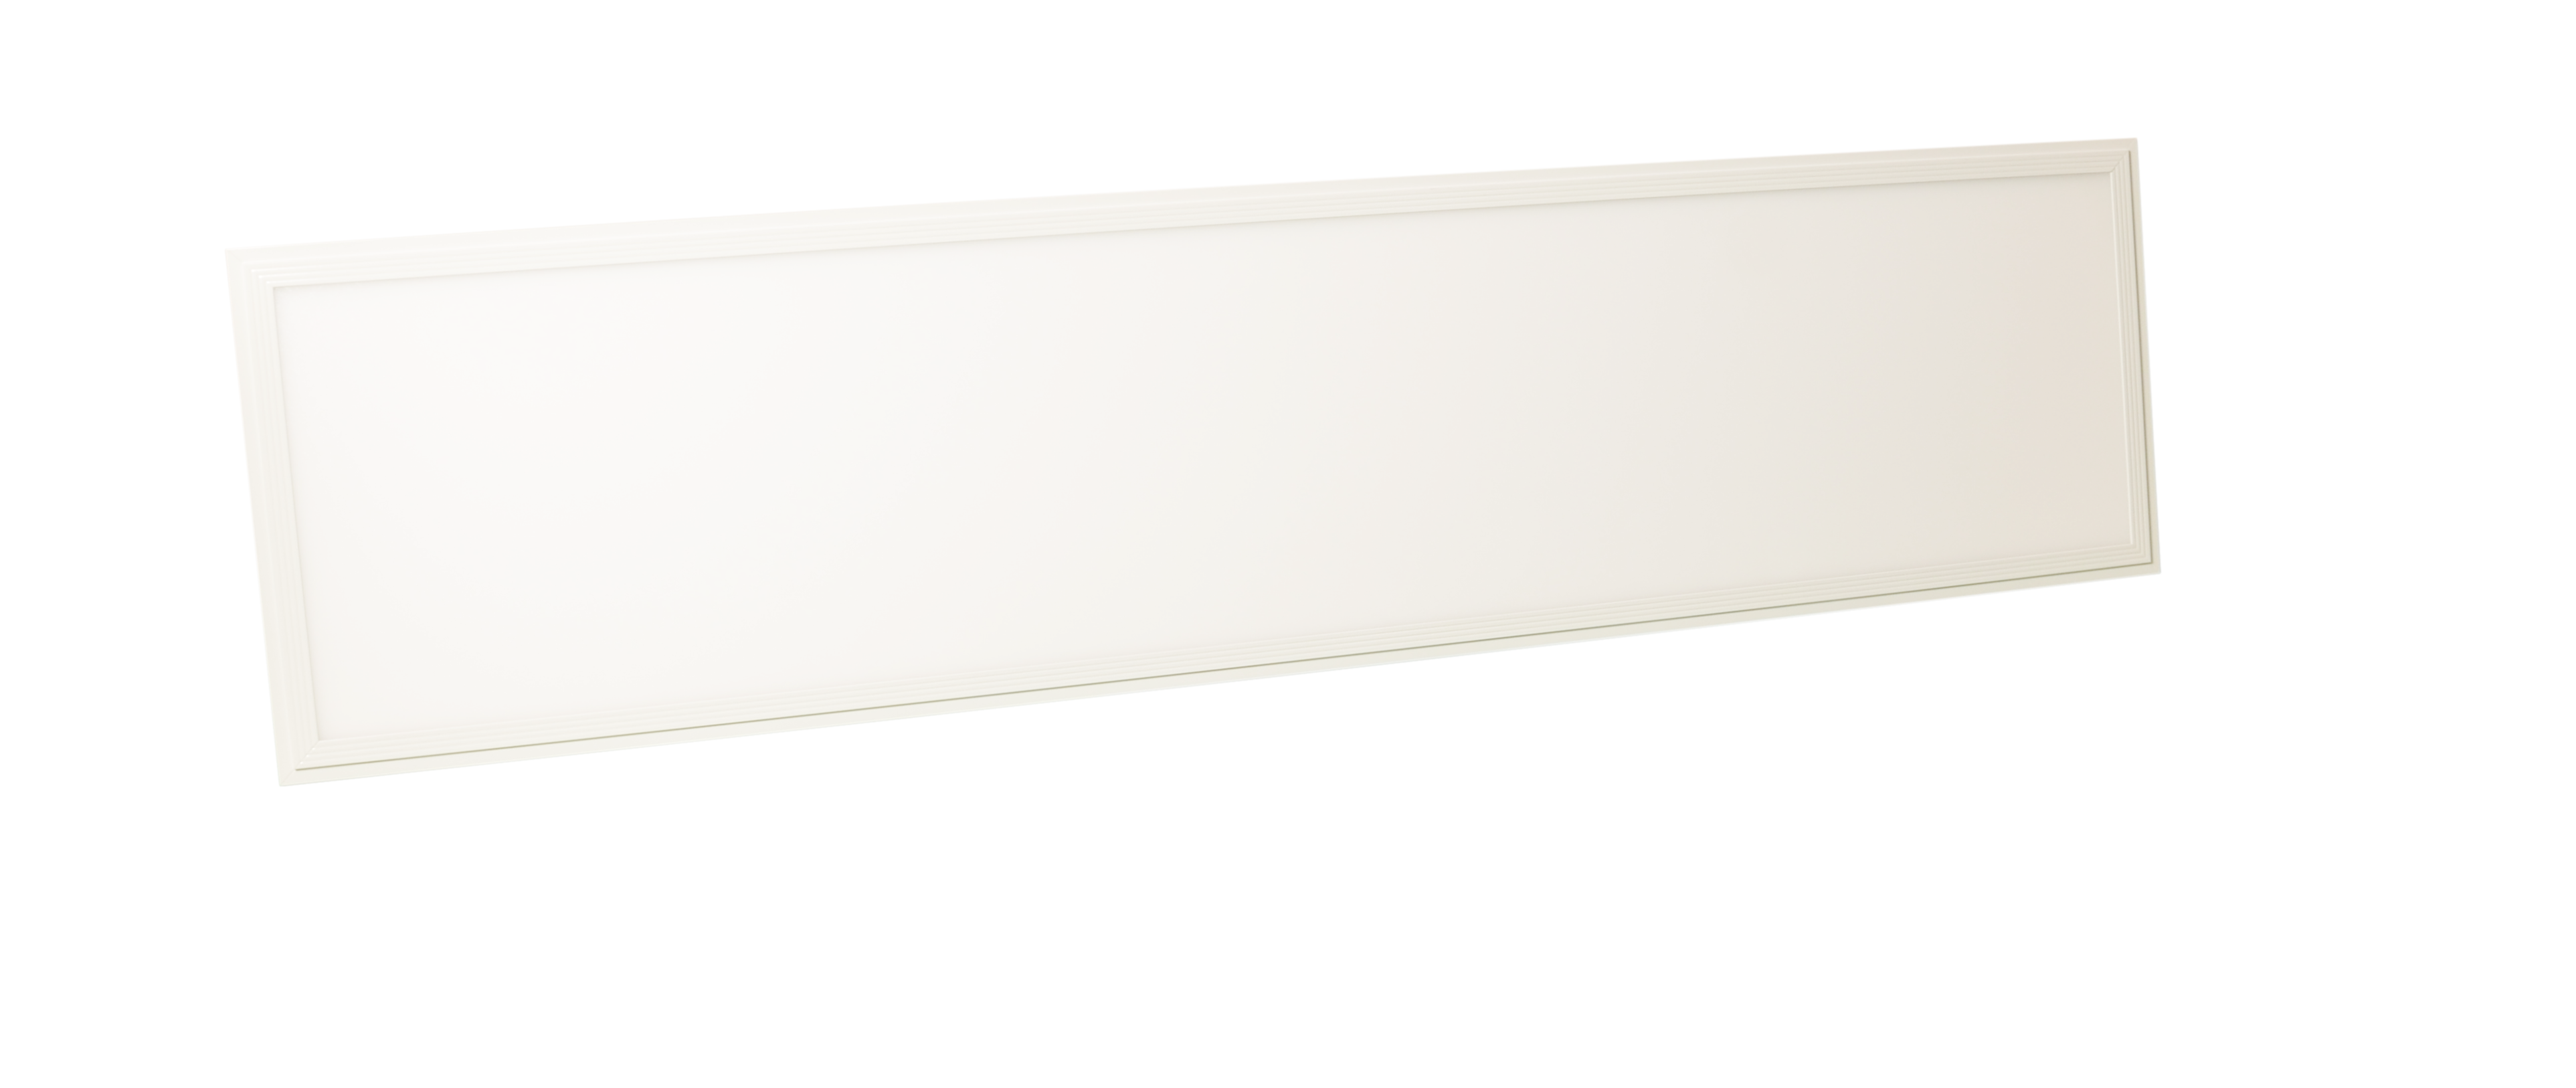 LED LIGHT PANEL - 36W - 1200mm X 300mm - 4000K - 9mm FRAME